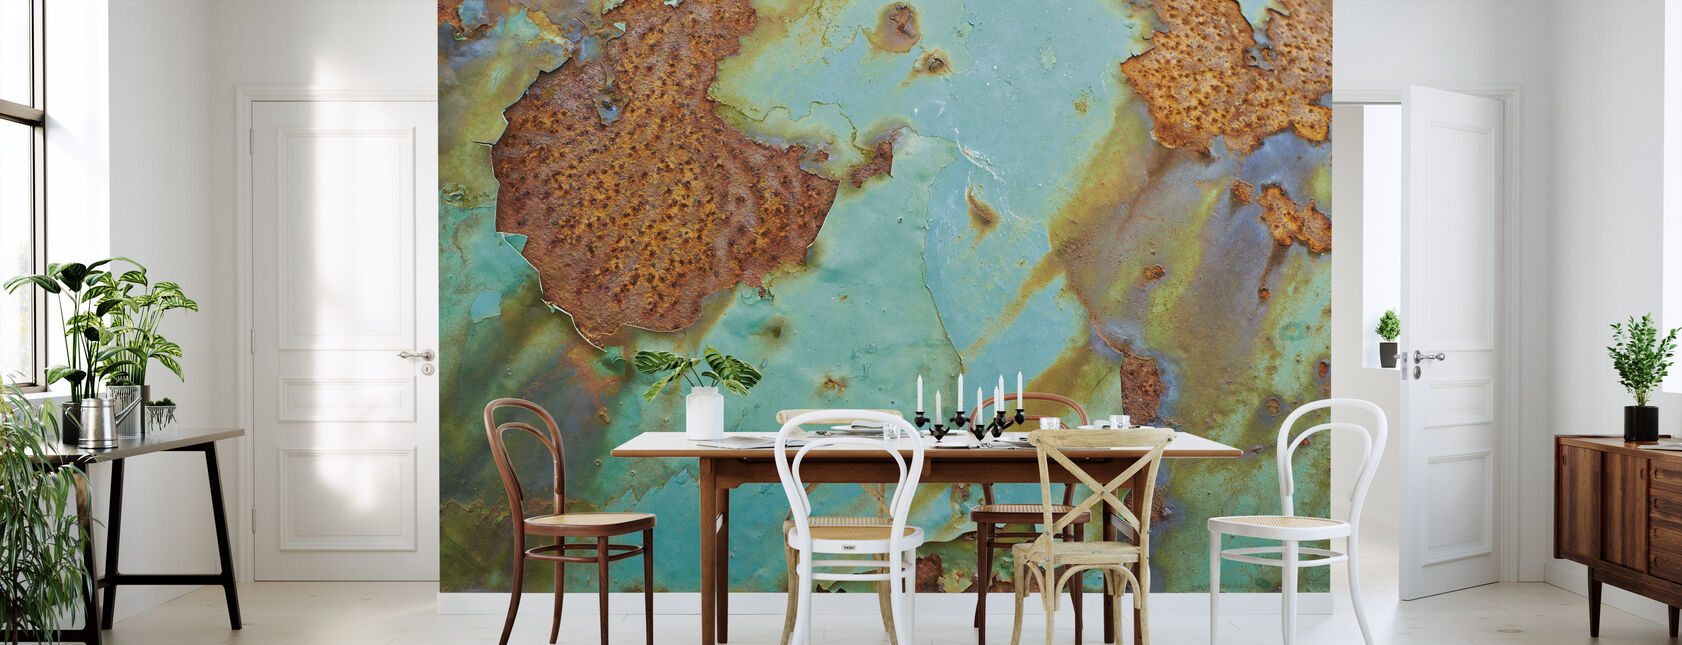 Turquoise and Rust - Wallpaper - Kitchen